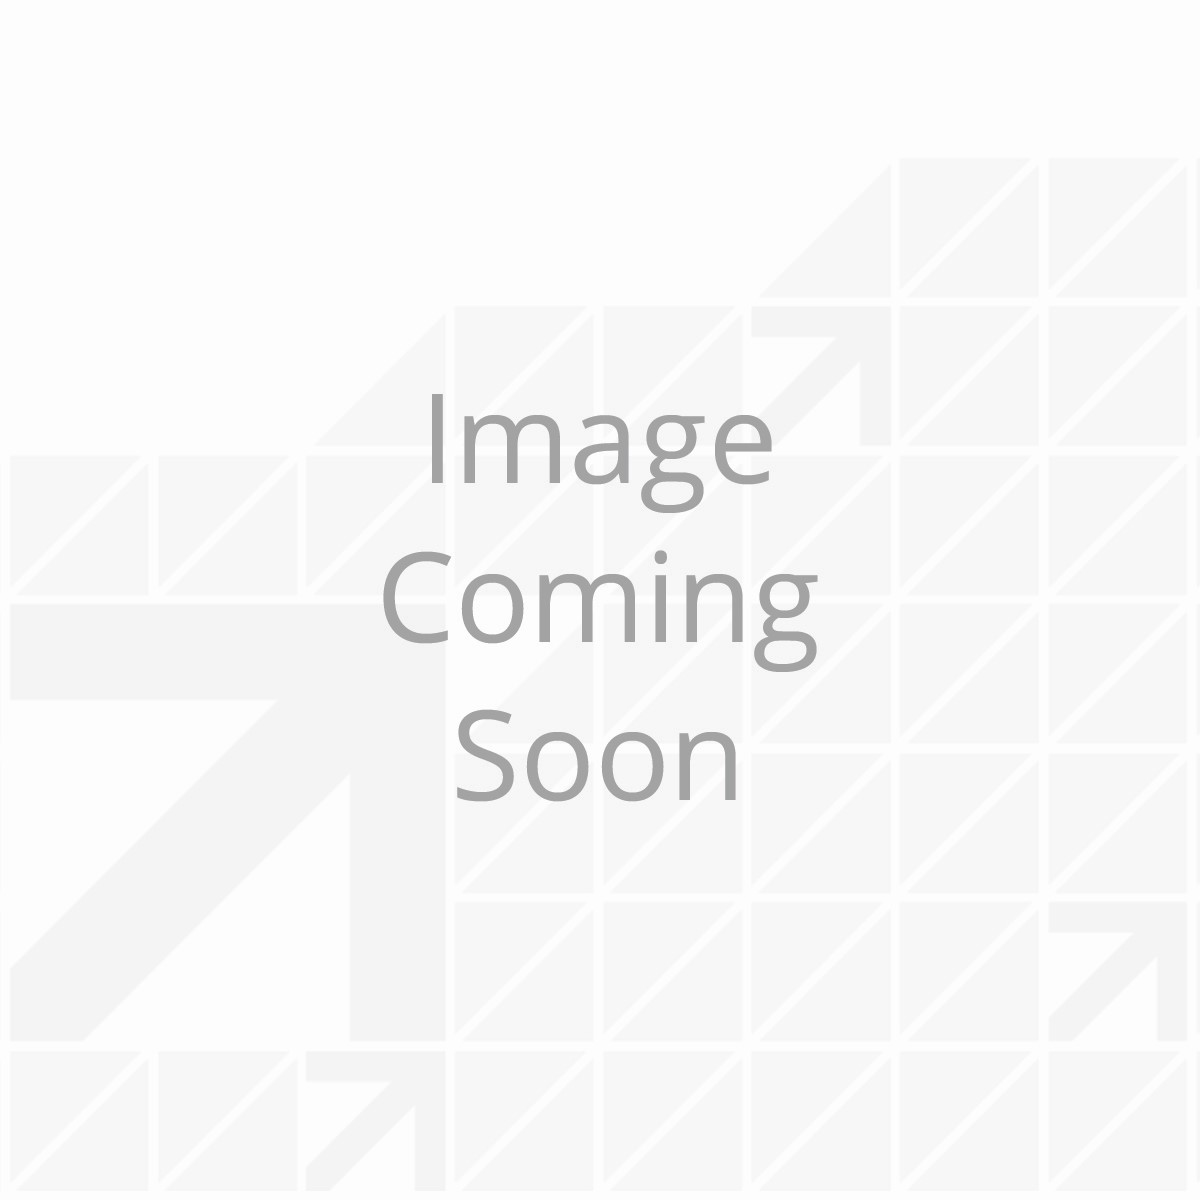 Axle Hardware Replacement Kit - Various Sizes